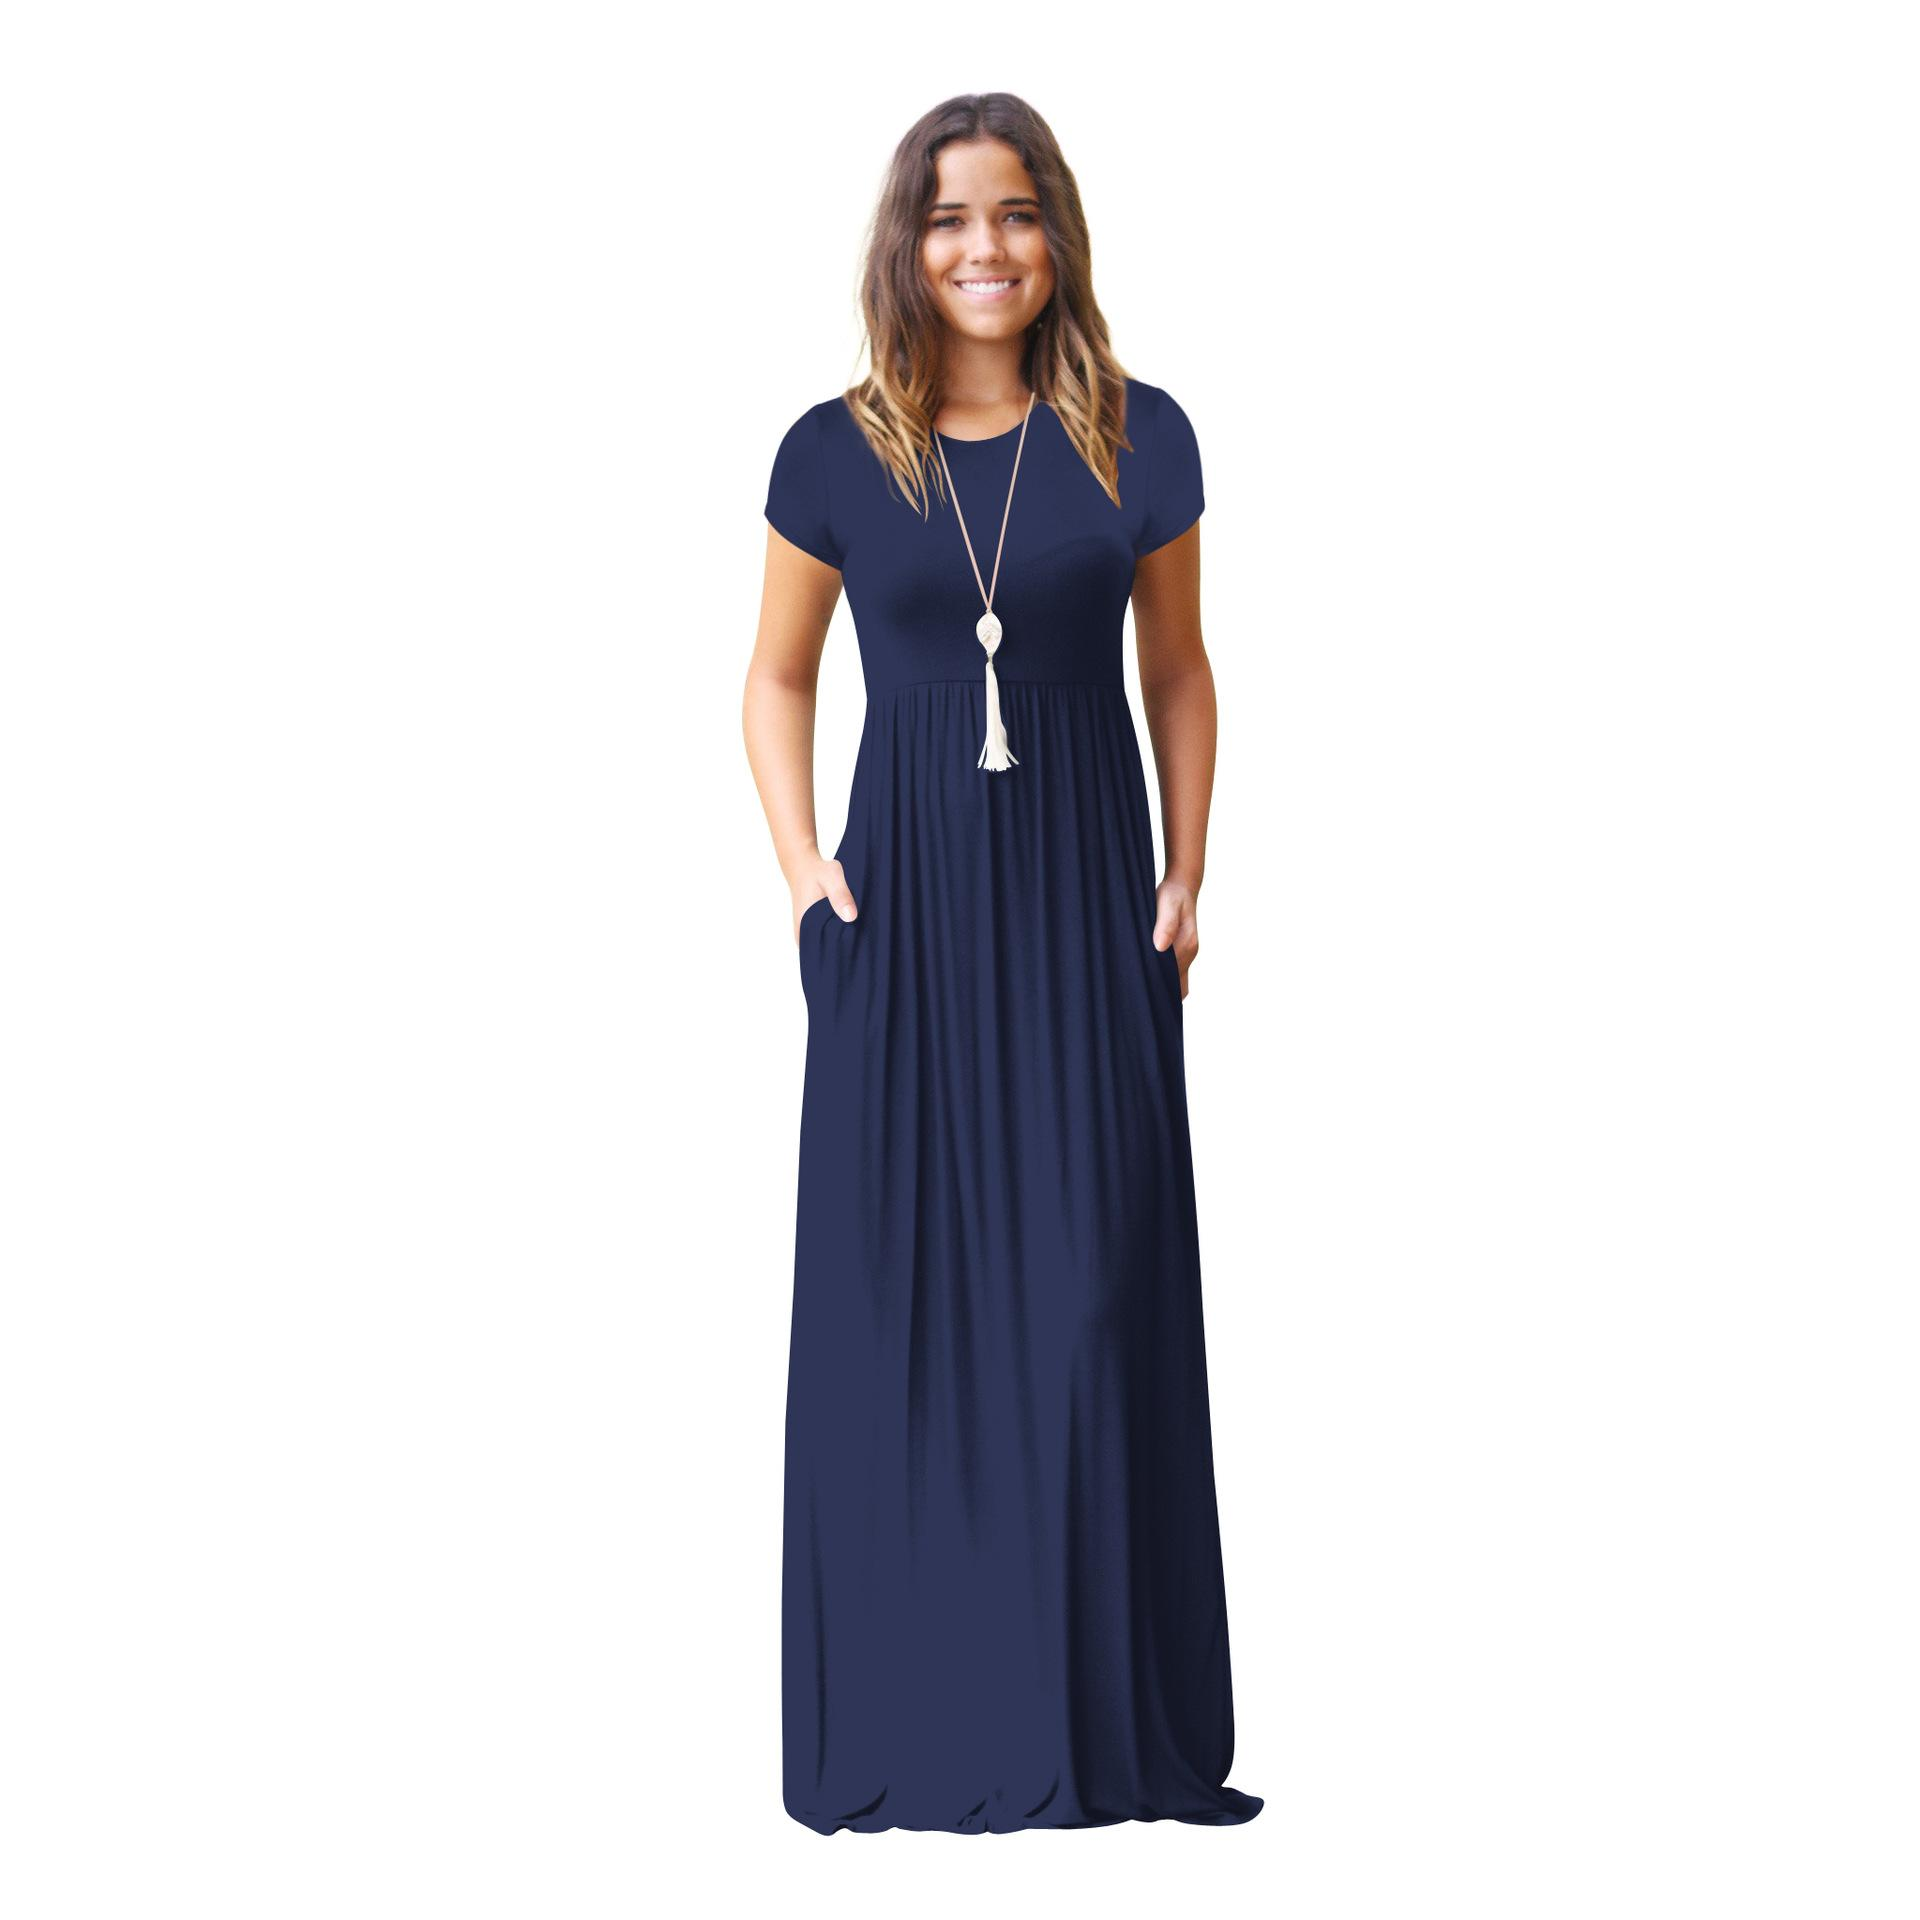 Summer Long Maxi Dress 2018 New Short Sleeve Solid Casual Women Pockets  Dresses Plus Size 2XL Robe Summer Dresses Robe White Evening Dresses Long  Black ... 749d1a5098df